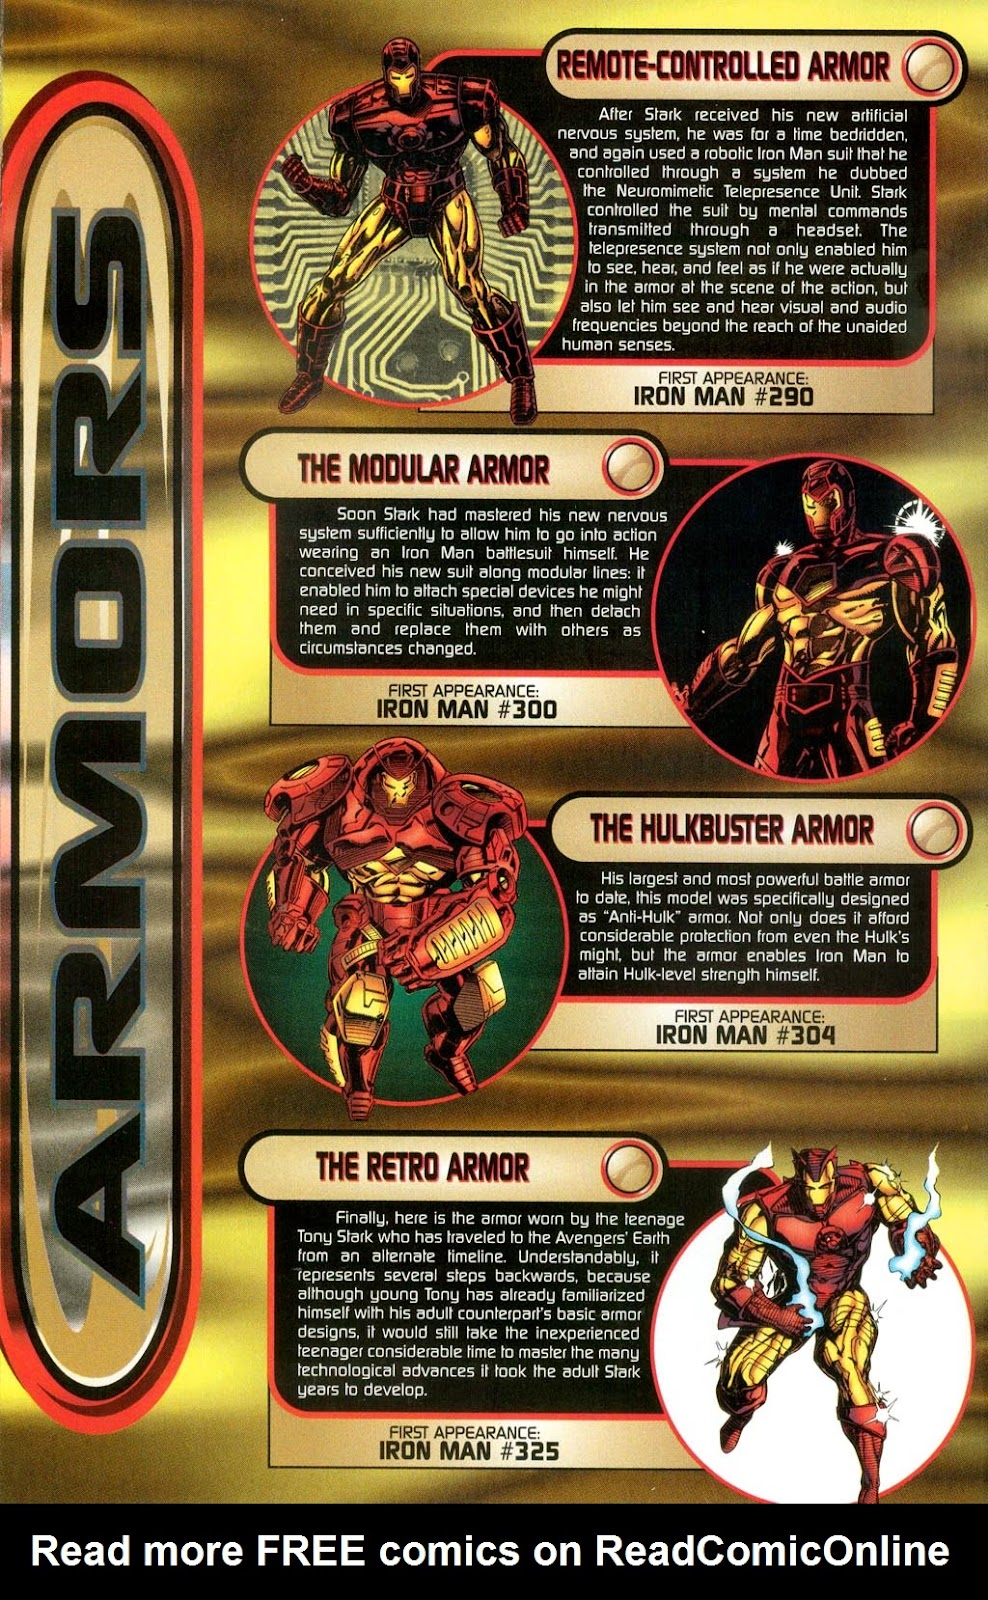 Read online Iron Man: The Legend comic -  Issue # Full - 20